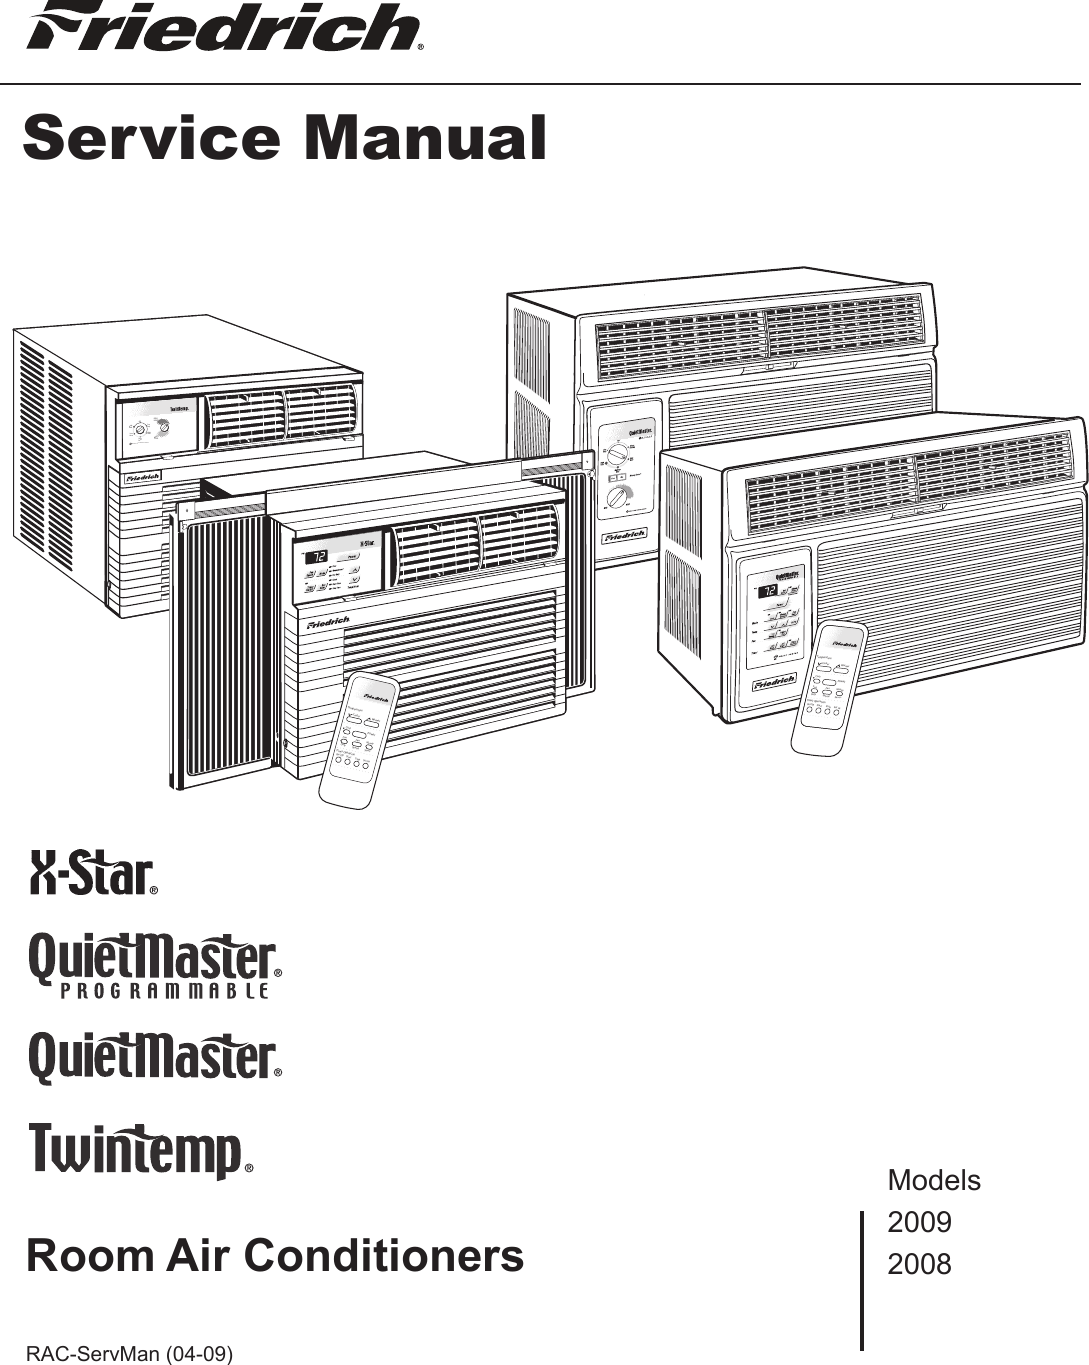 Friedrich Quietmaster 2009 Users Manual P2kpd 1 05 Wiring Diagrams